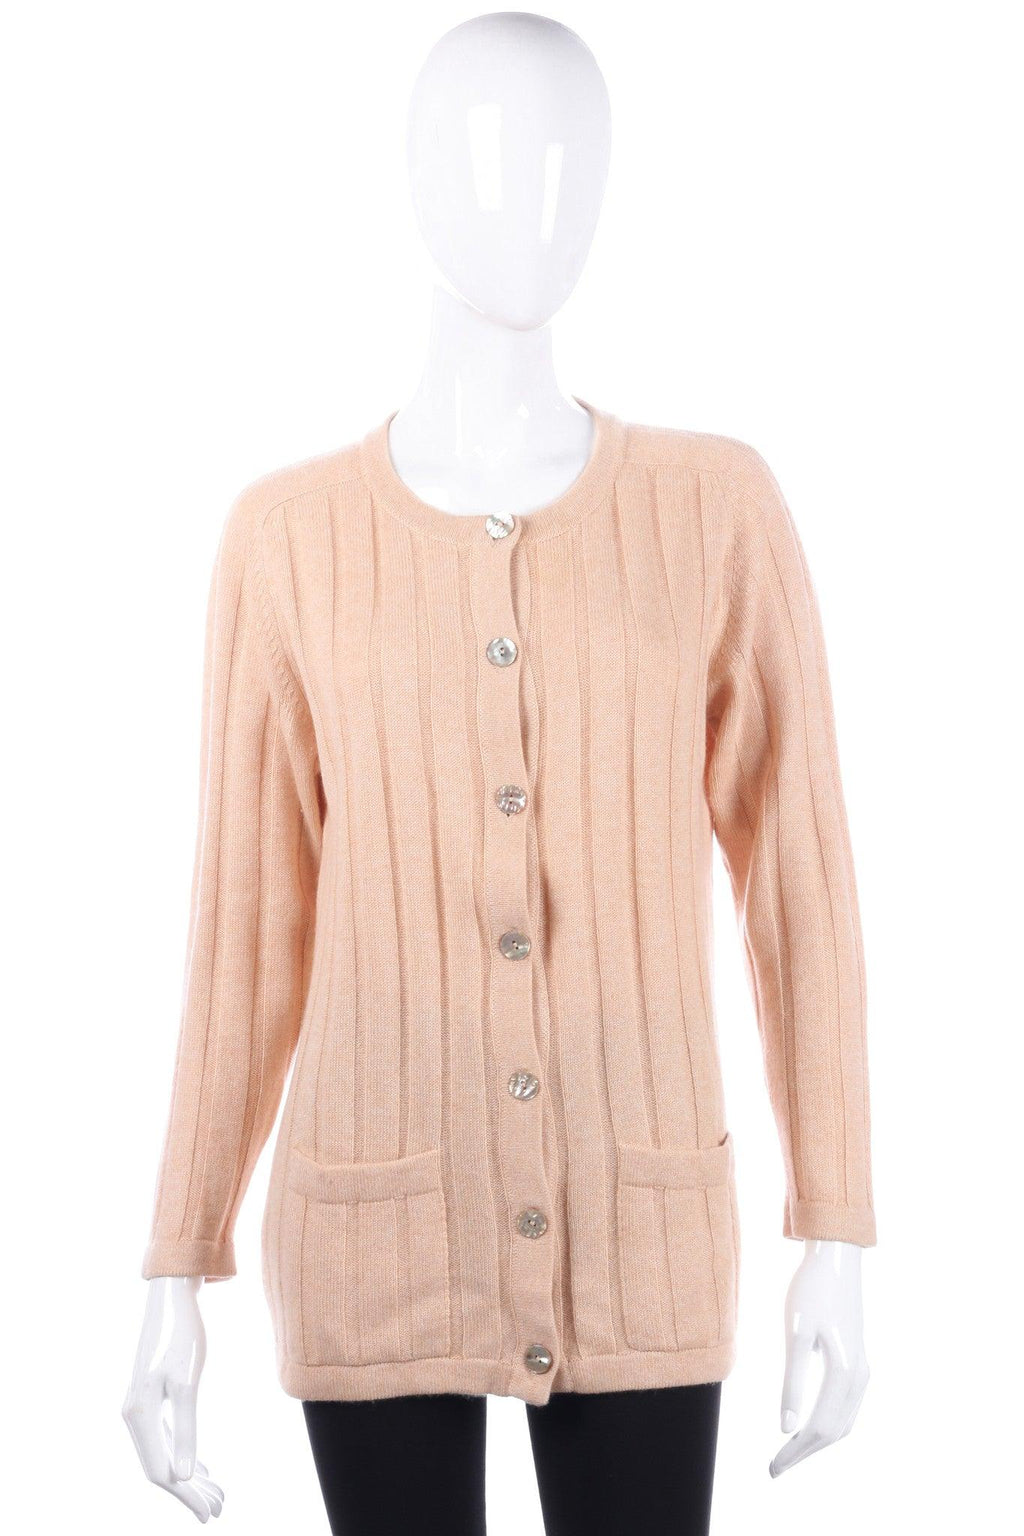 Glen match peach winter cardigan size XS